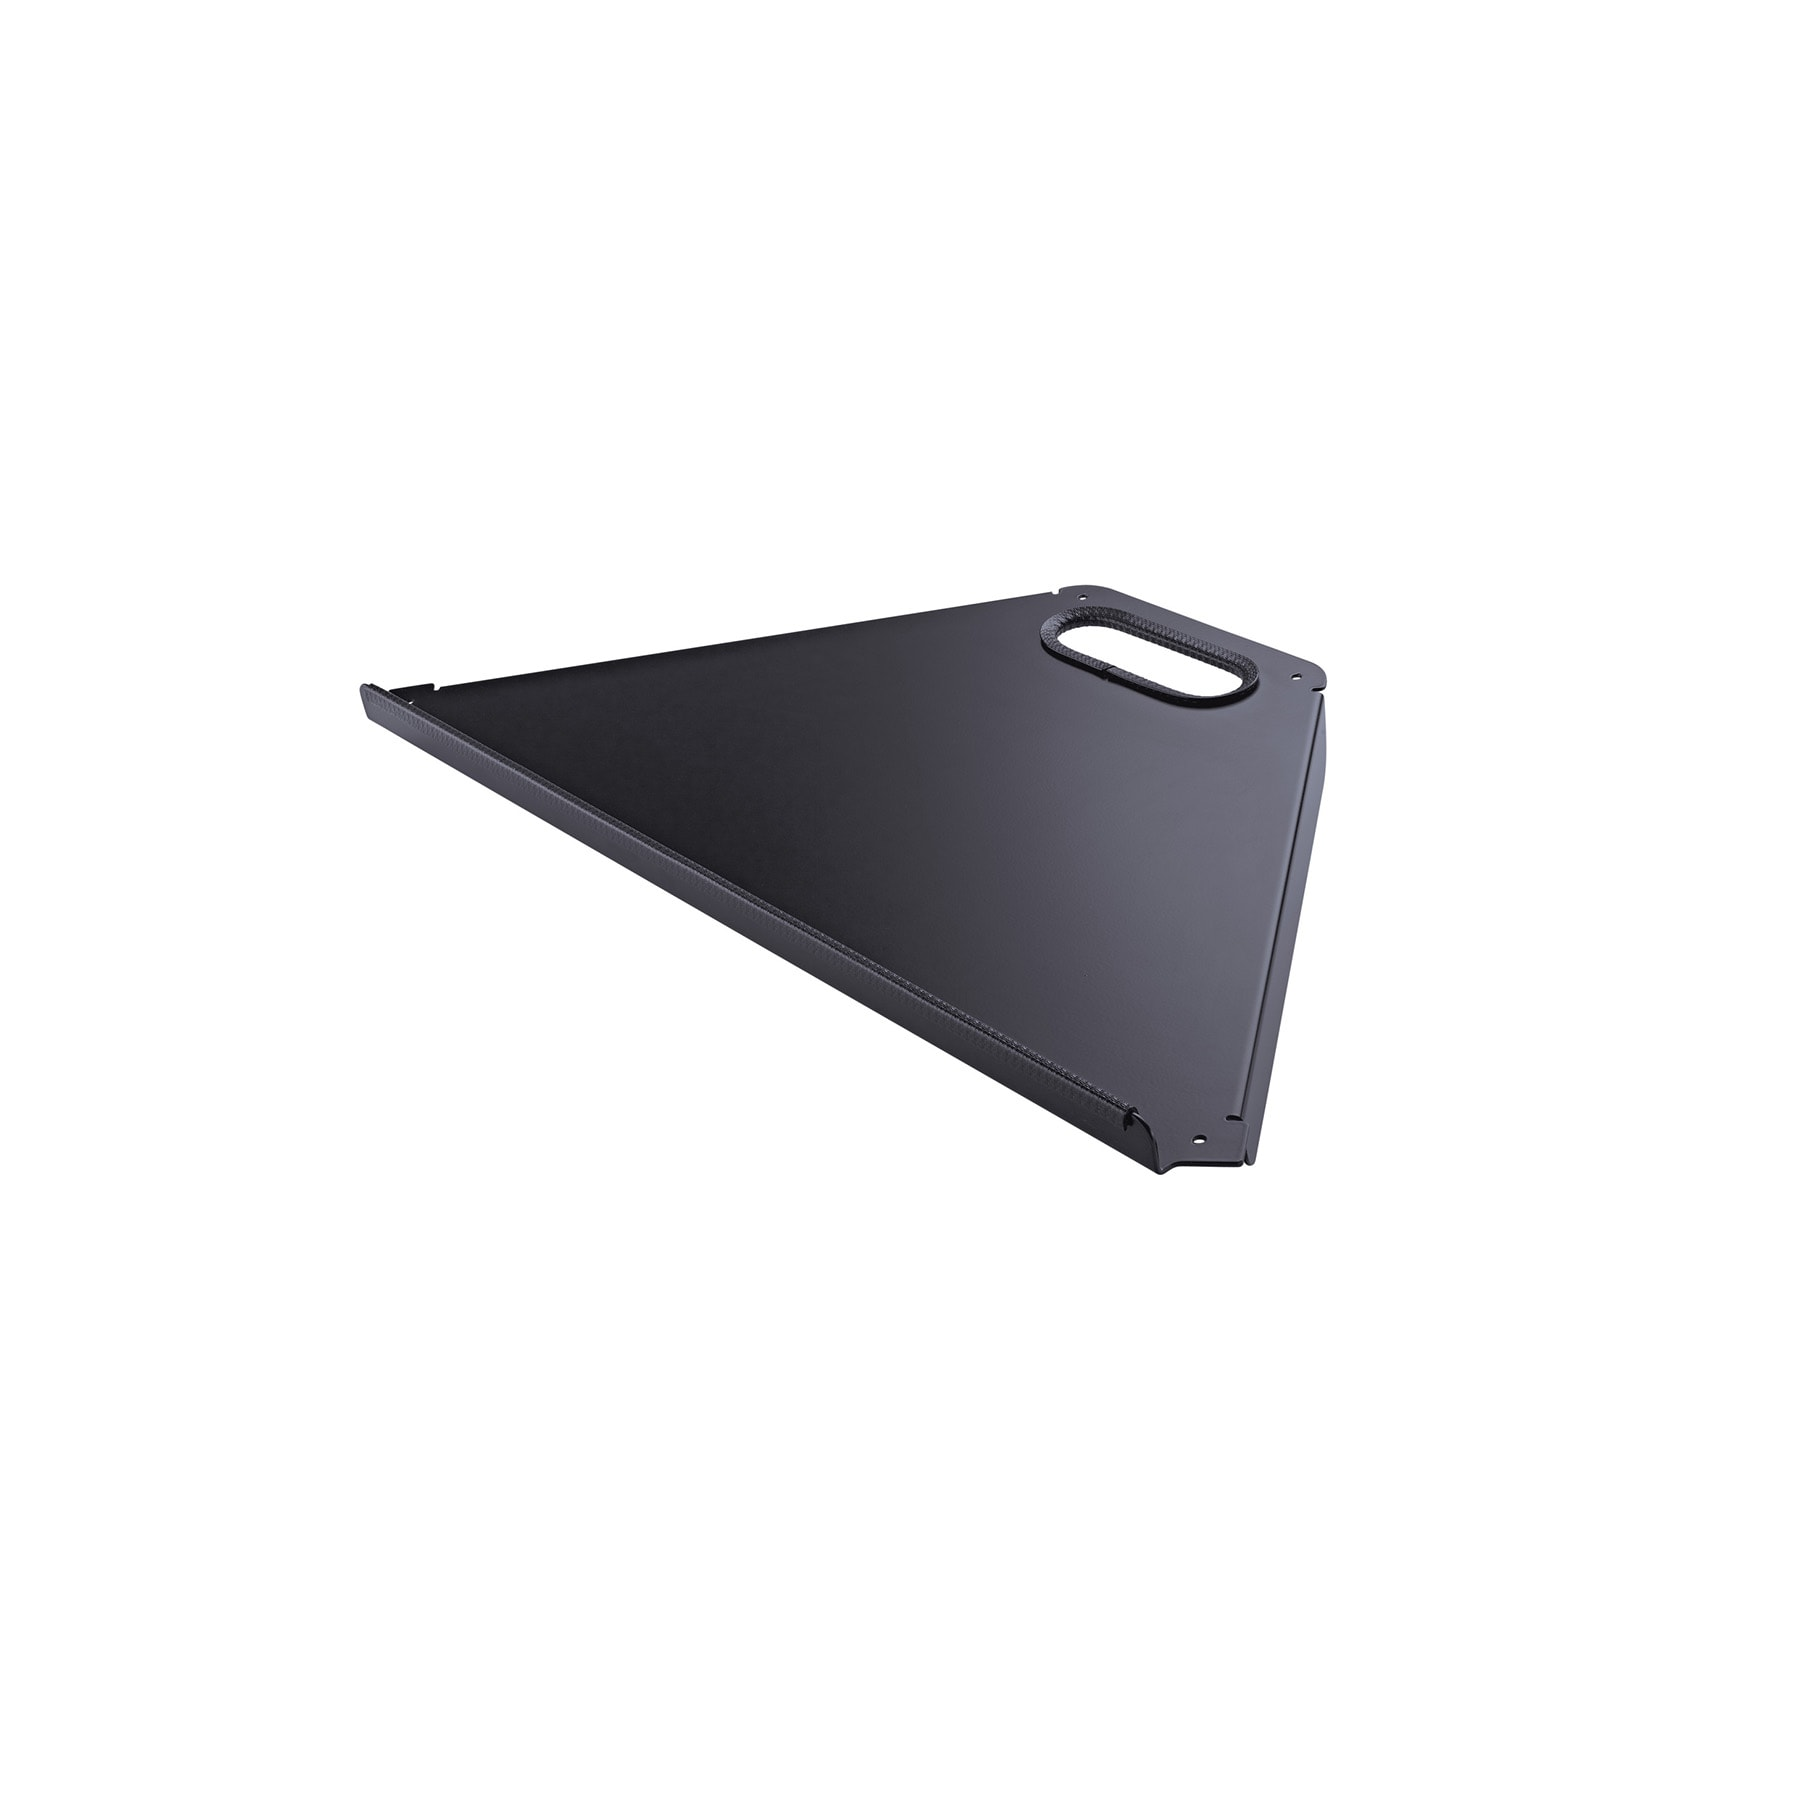 KM18876 - Controller keyboard tray